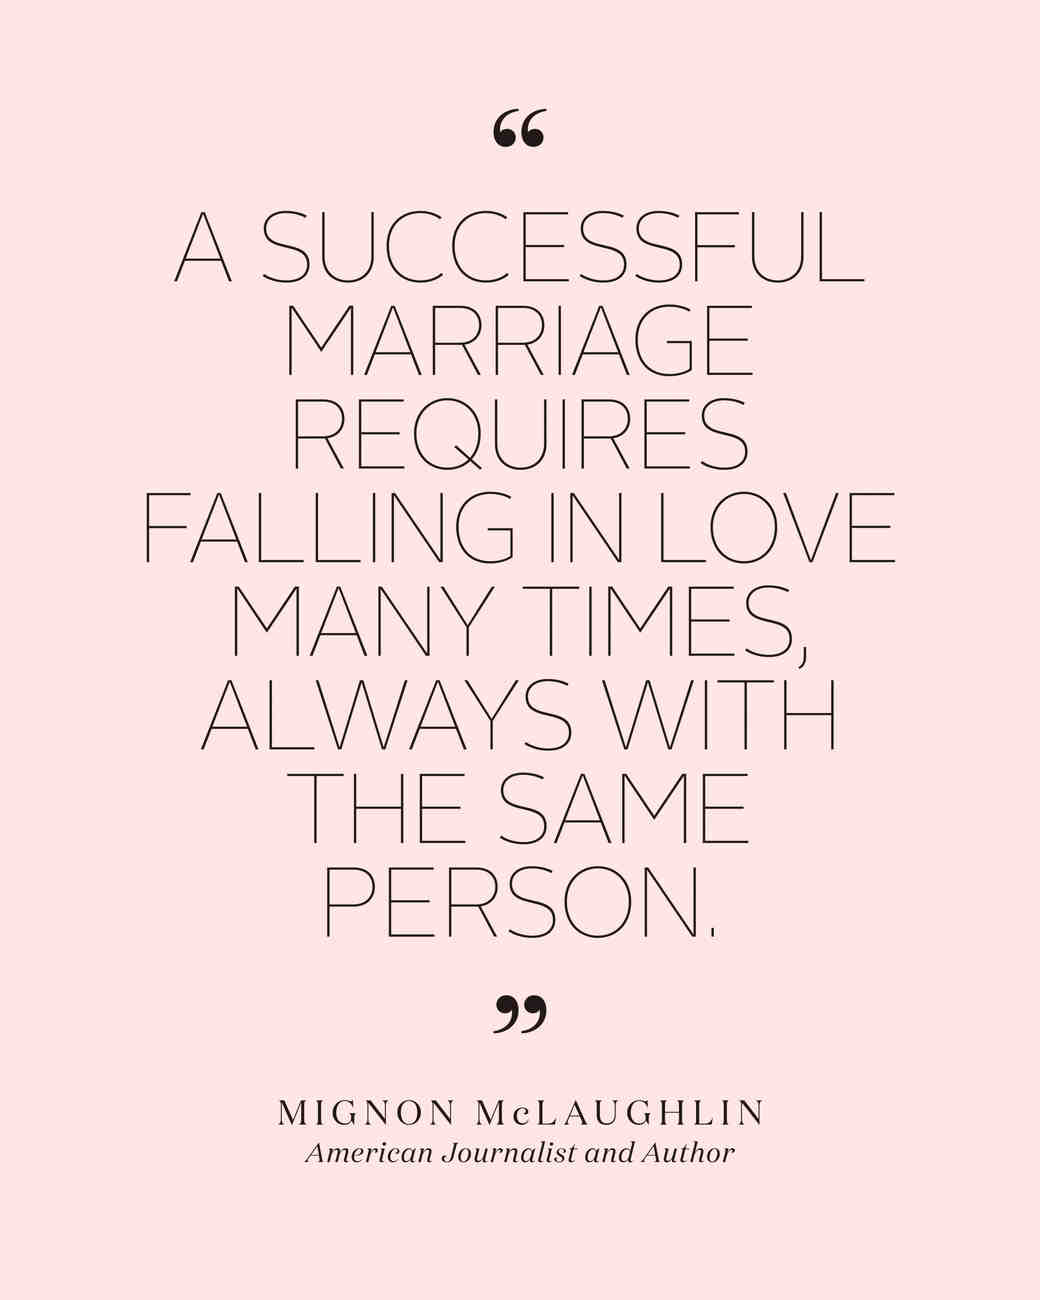 msw-wedding-quotes1-0315.jpg